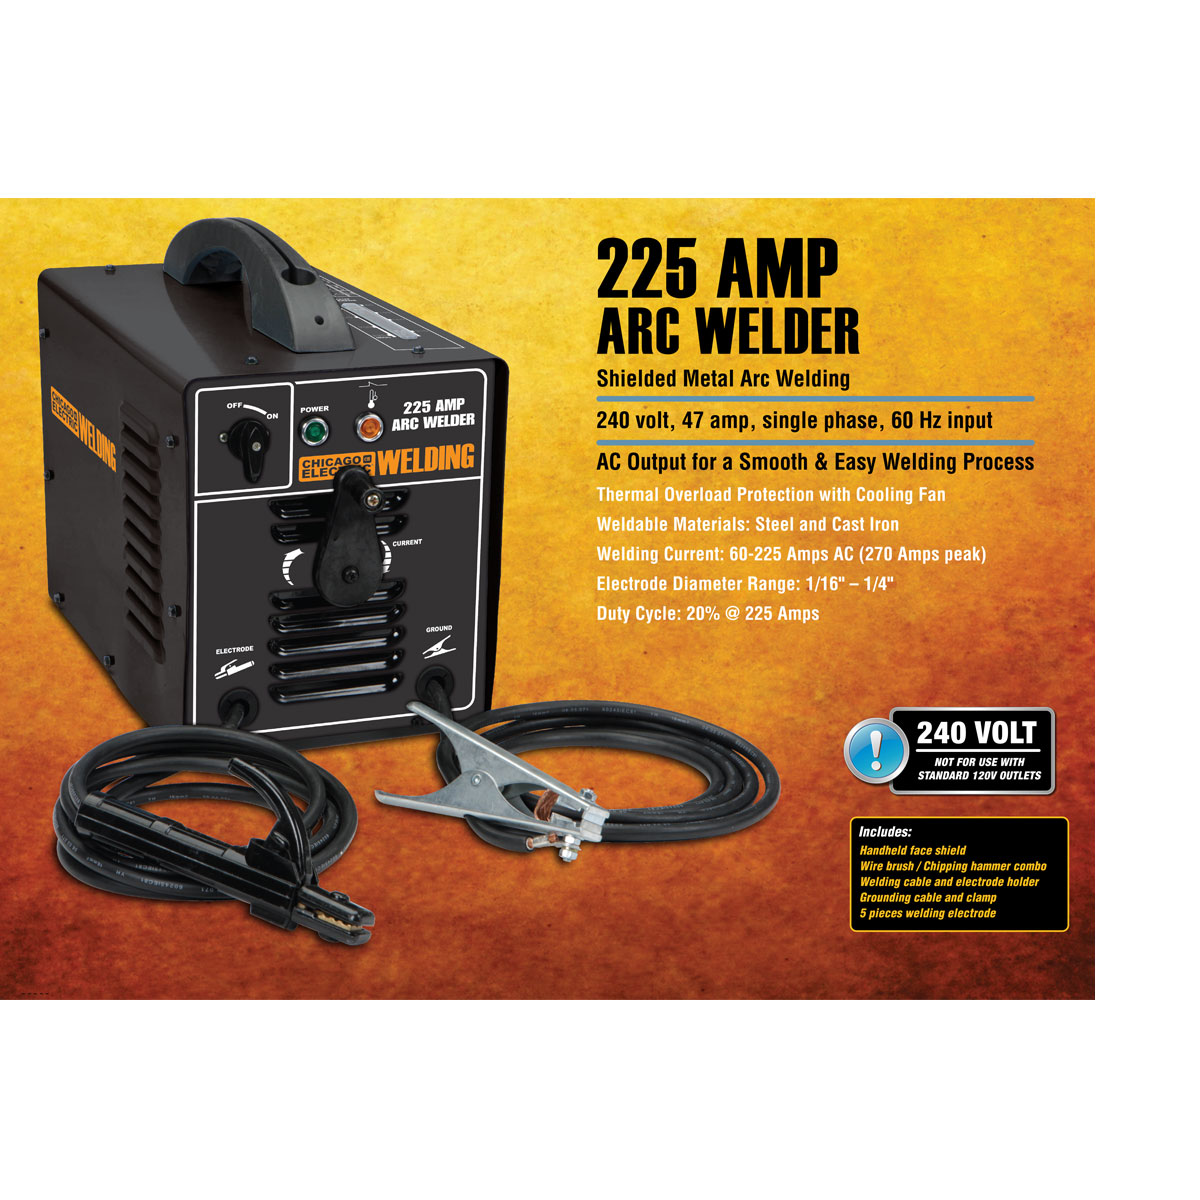 225 Amp-AC, 240 Volt, Stick Welder on